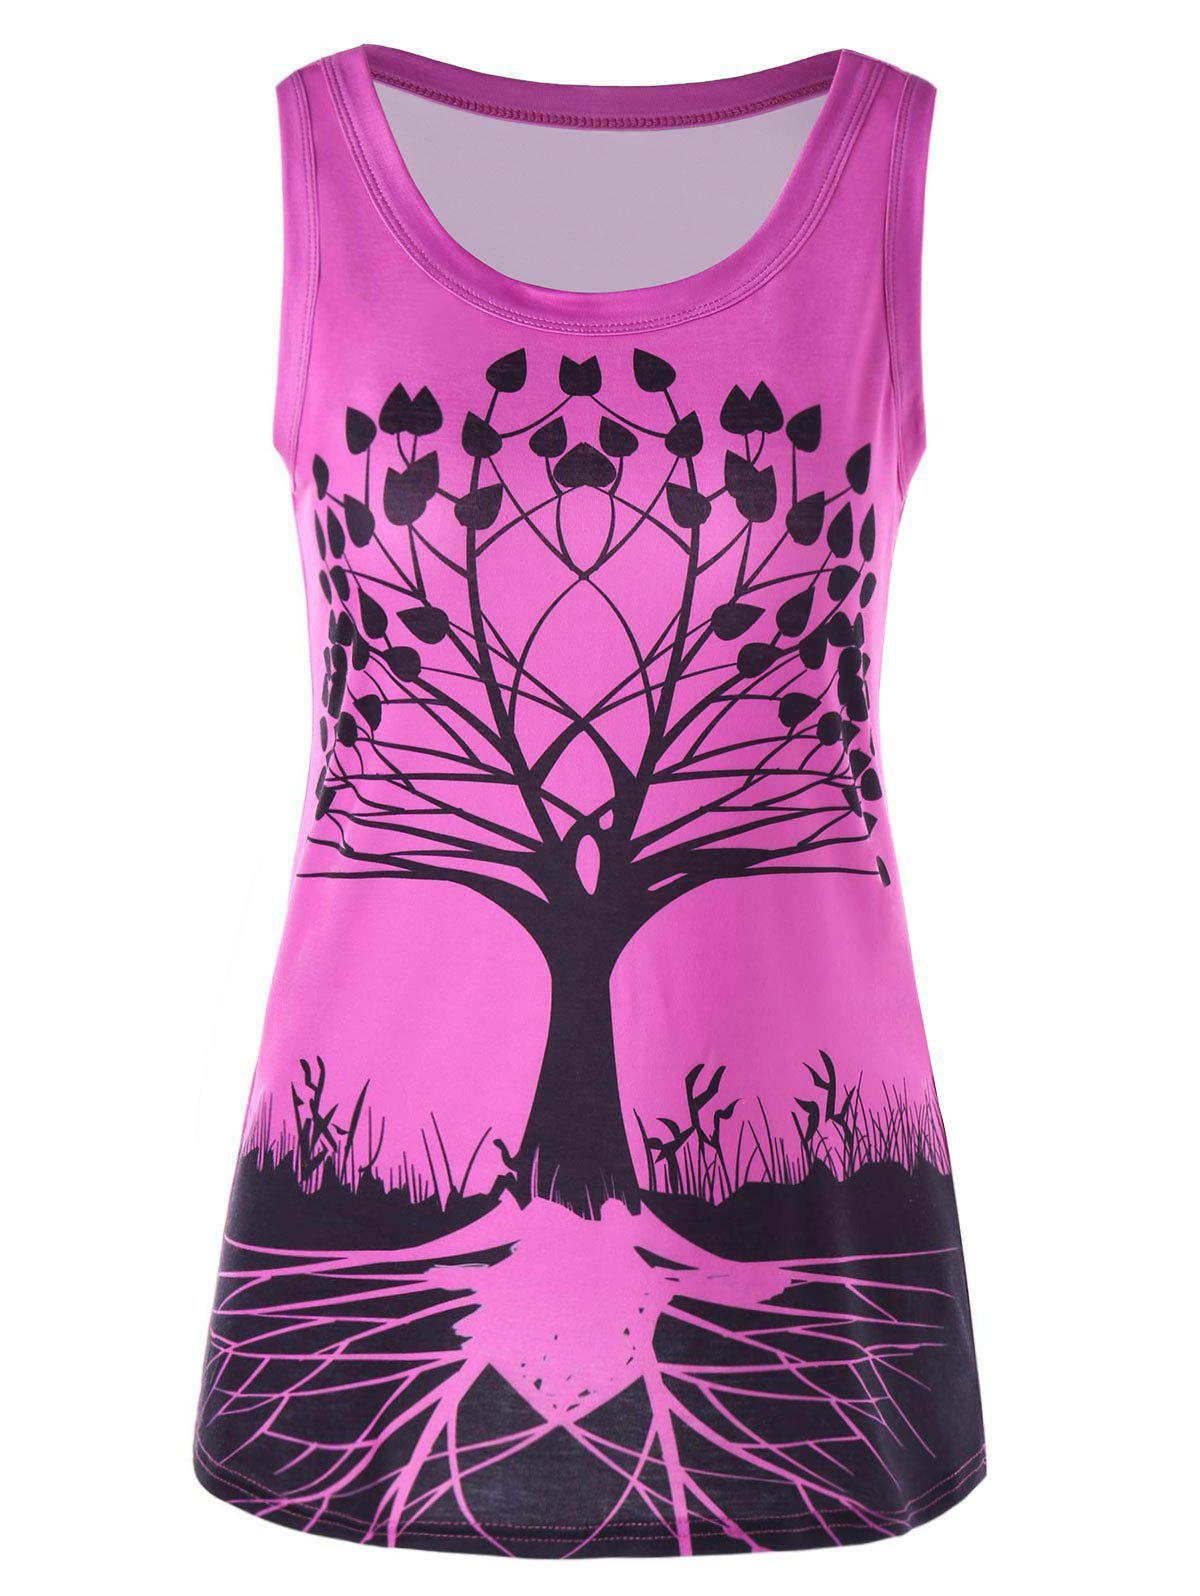 Tree Graphic Scoop Neck Tank Top scoop neck graphic tank top